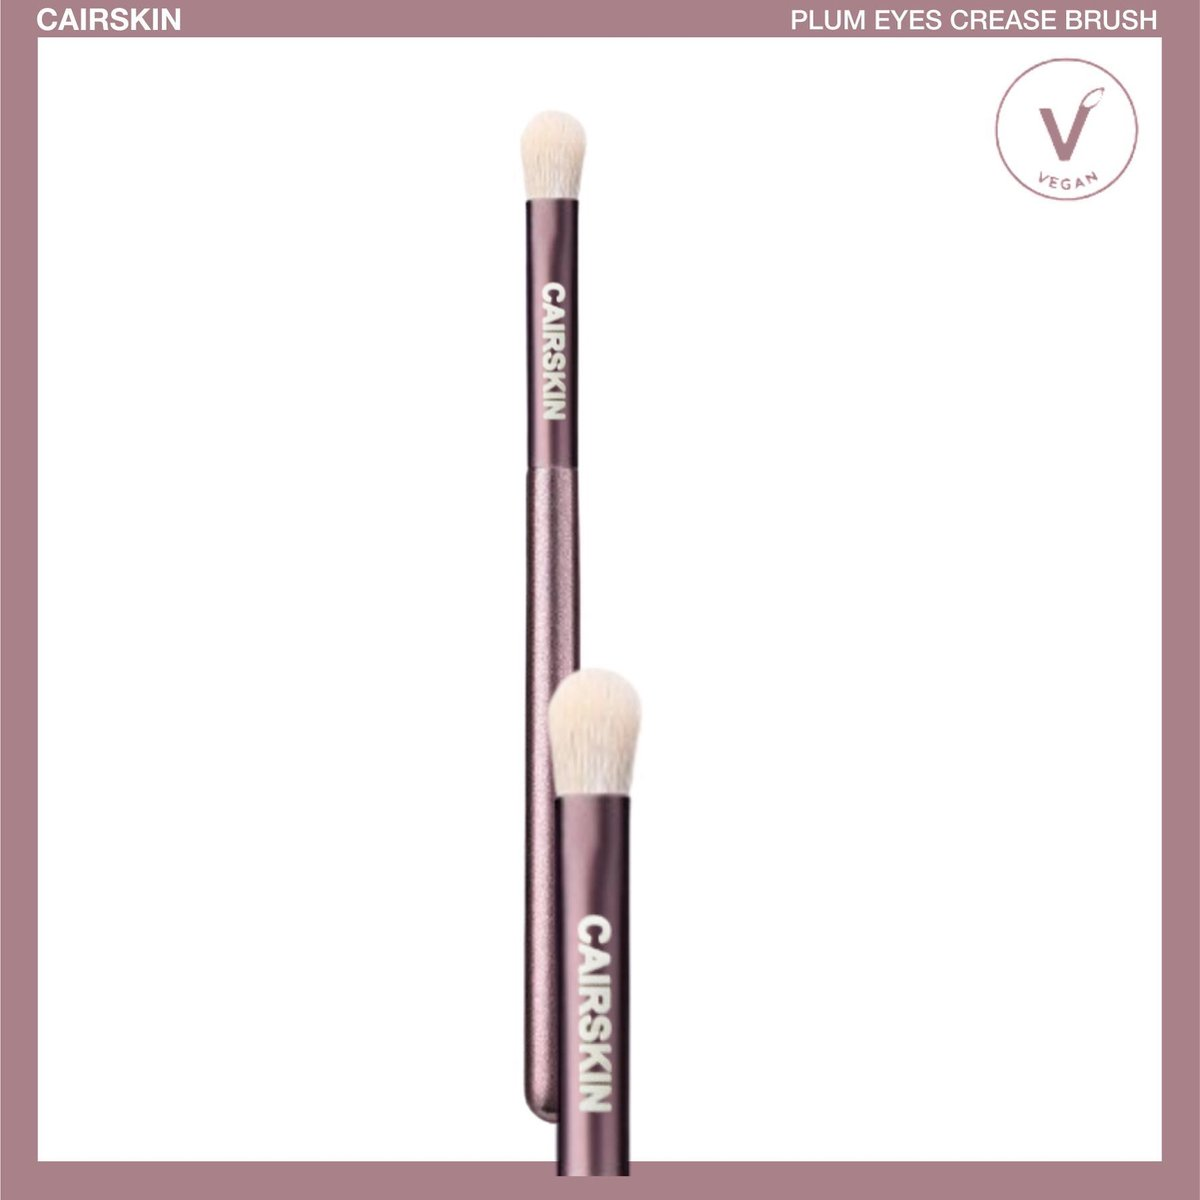 CAIRSKIN Plum Crease Brush - Eyes